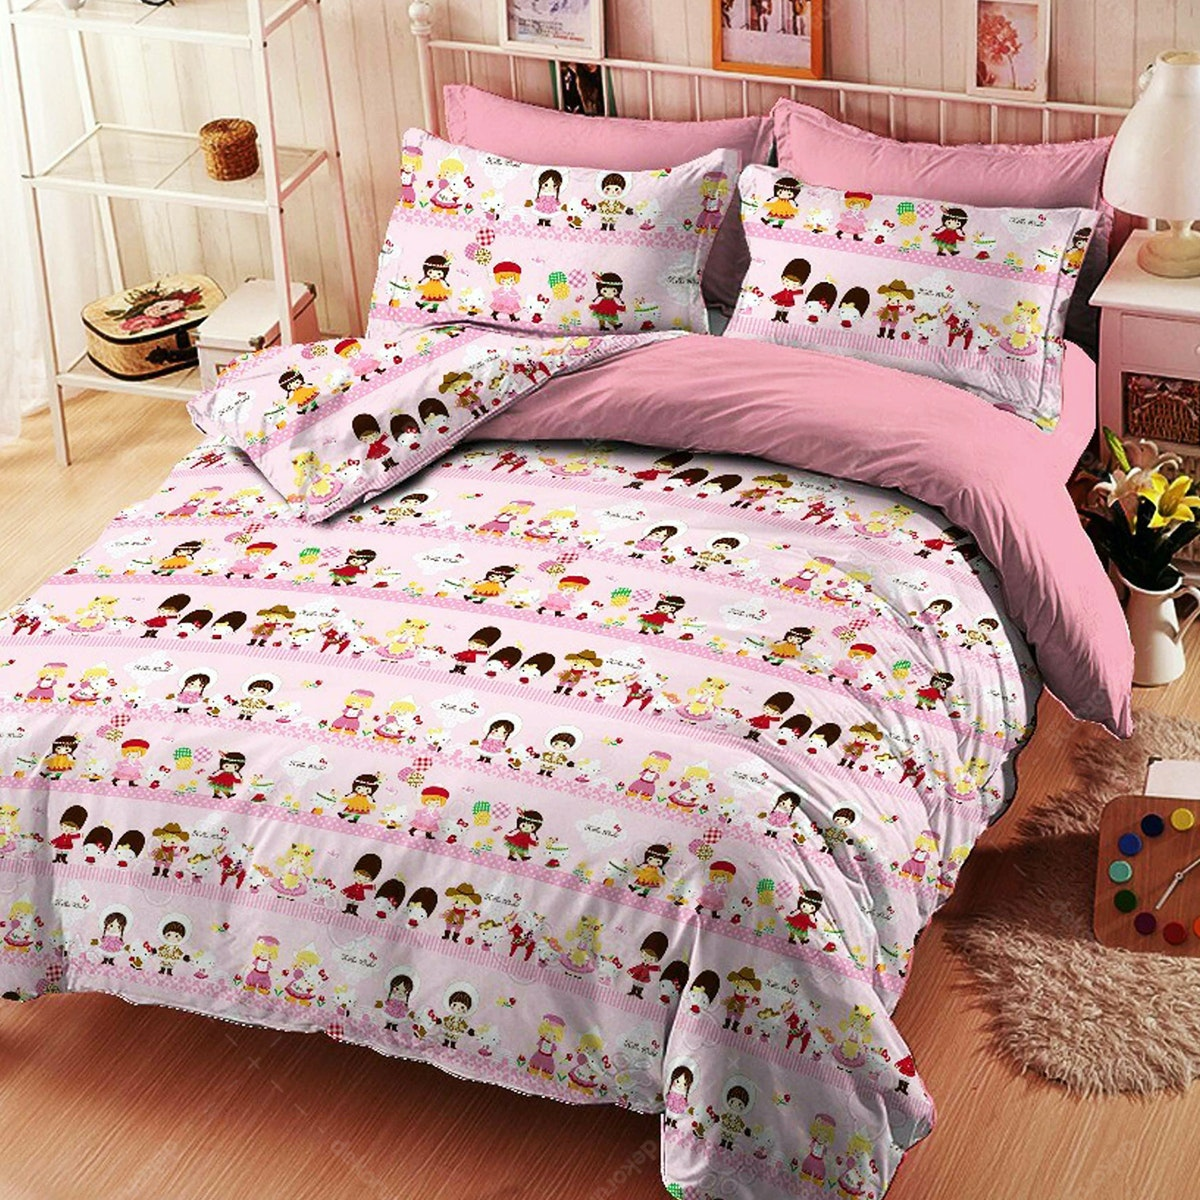 Yukero Sprei Motif Hello Kitty World Travel Pink 120x200x20